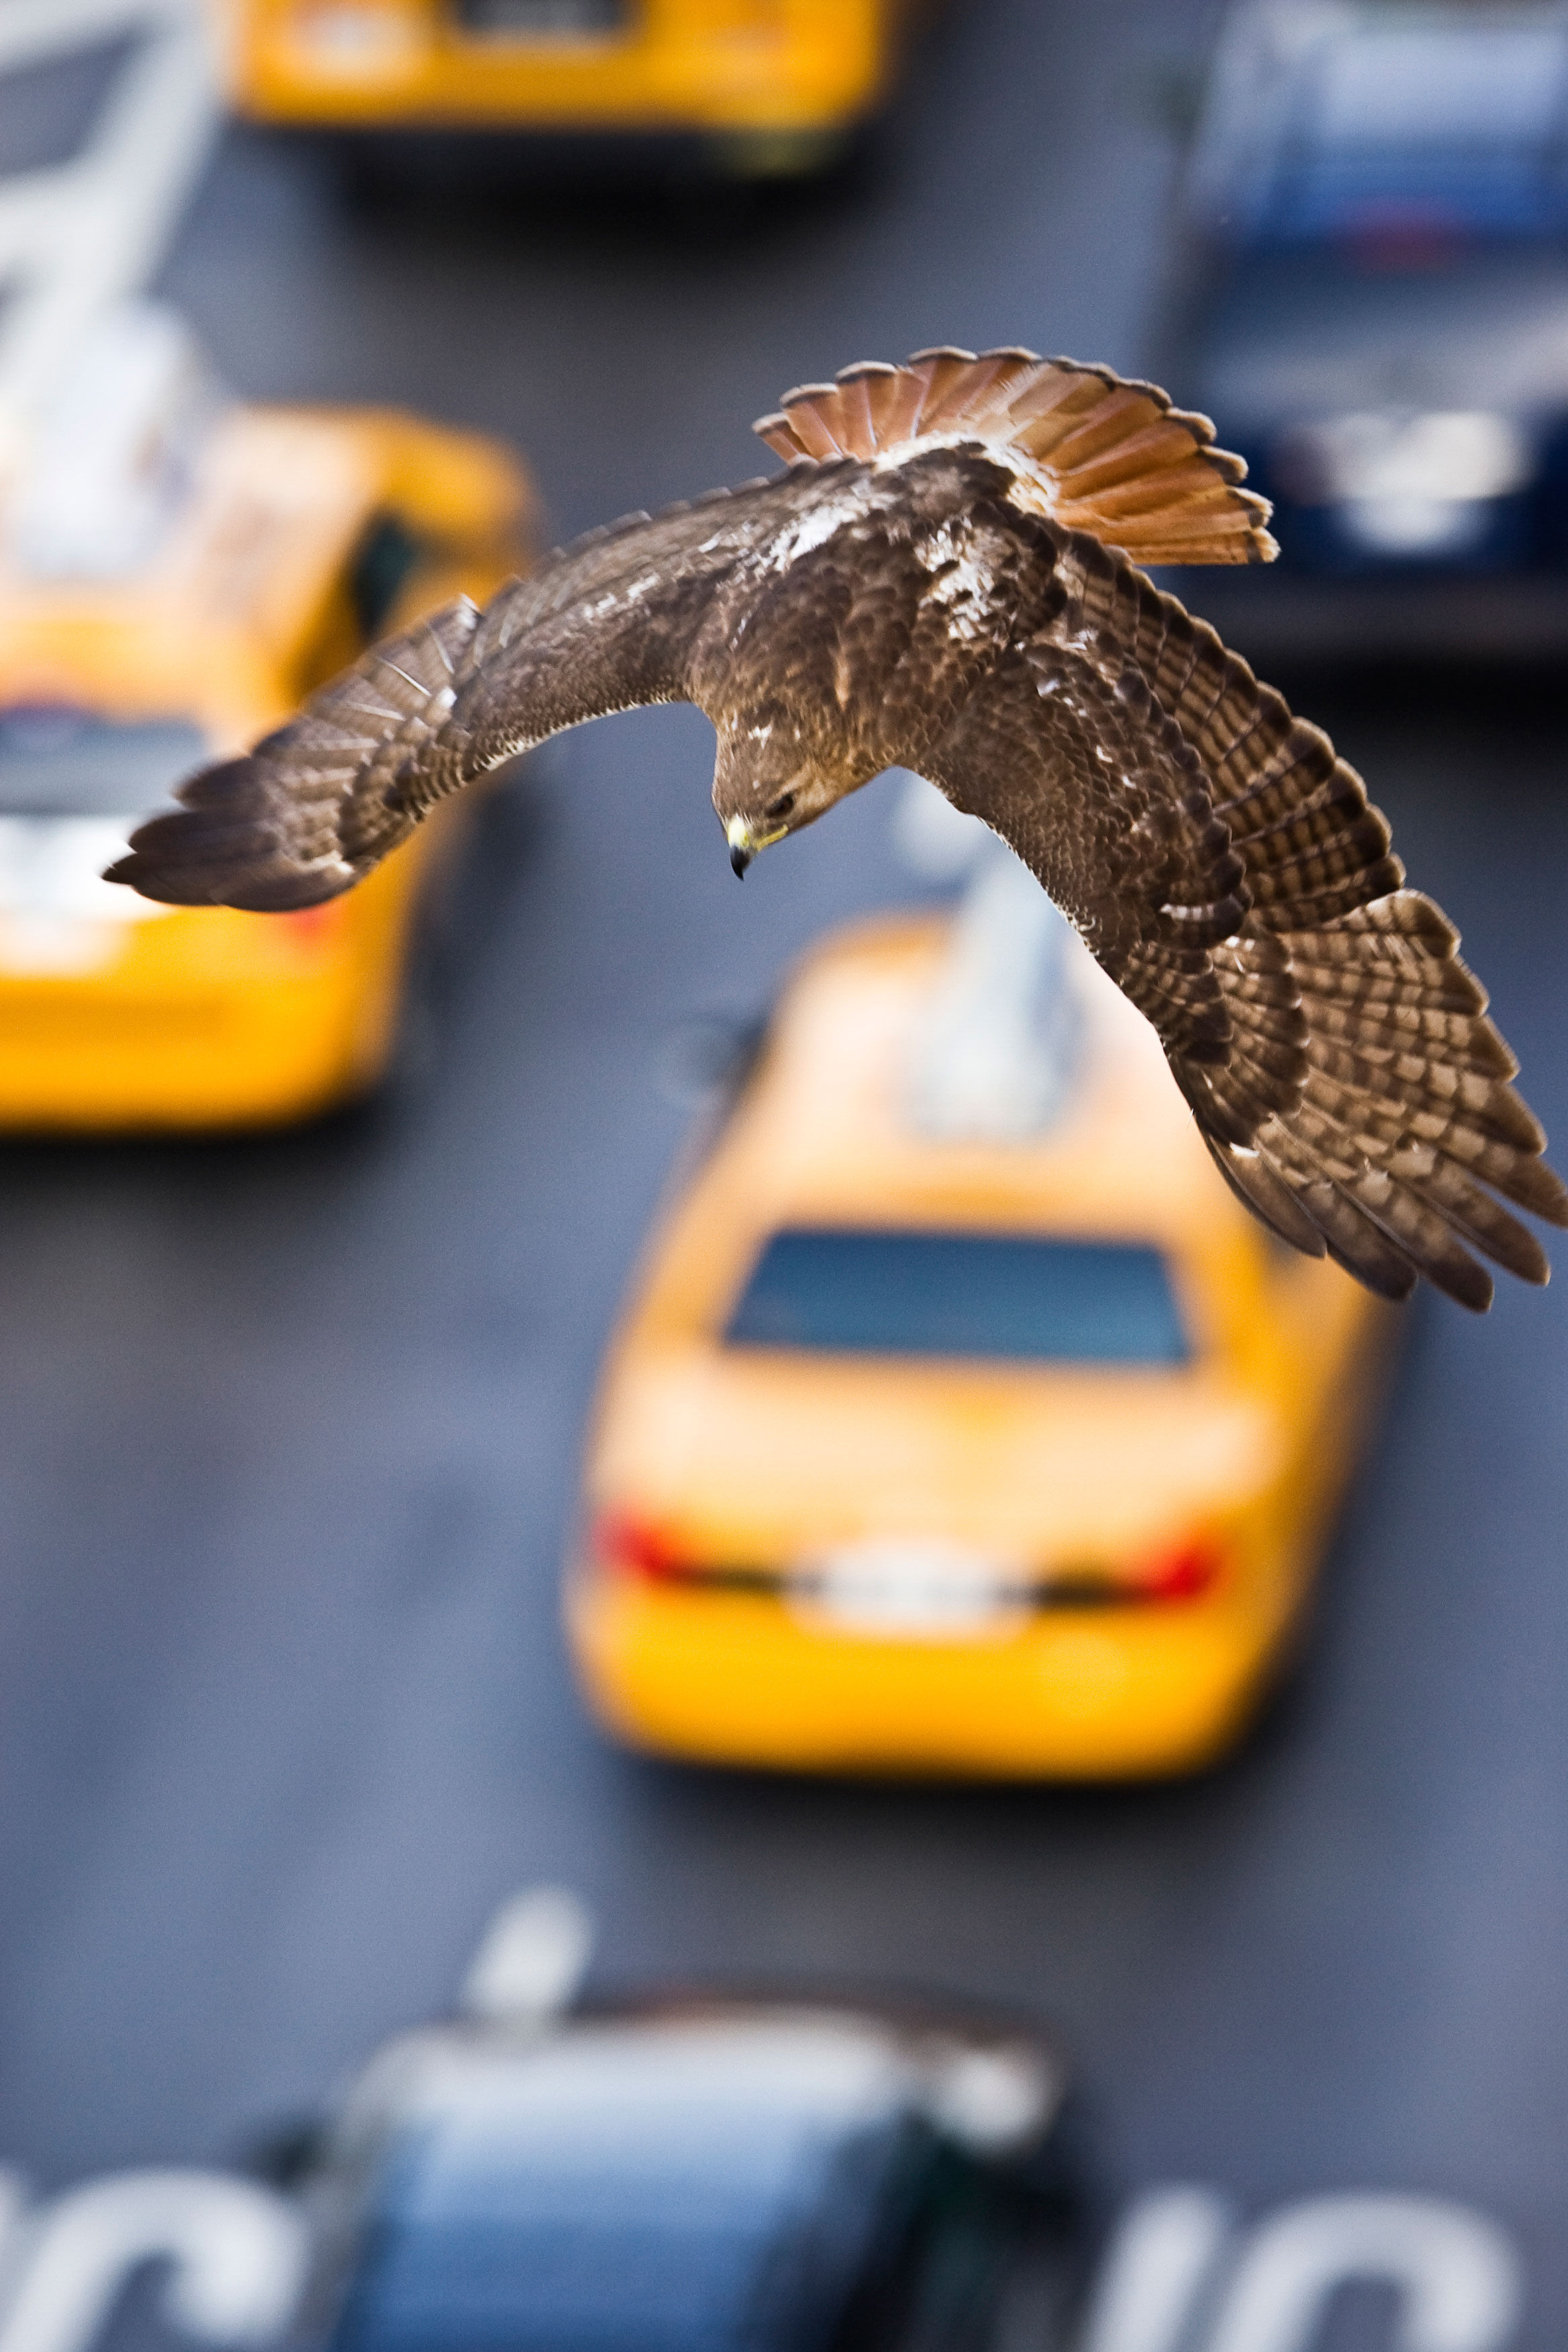 A Red-tailed Hawk swooping over rush-hour traffic is no longer an uncommon sight in New York City. Francois Portmann